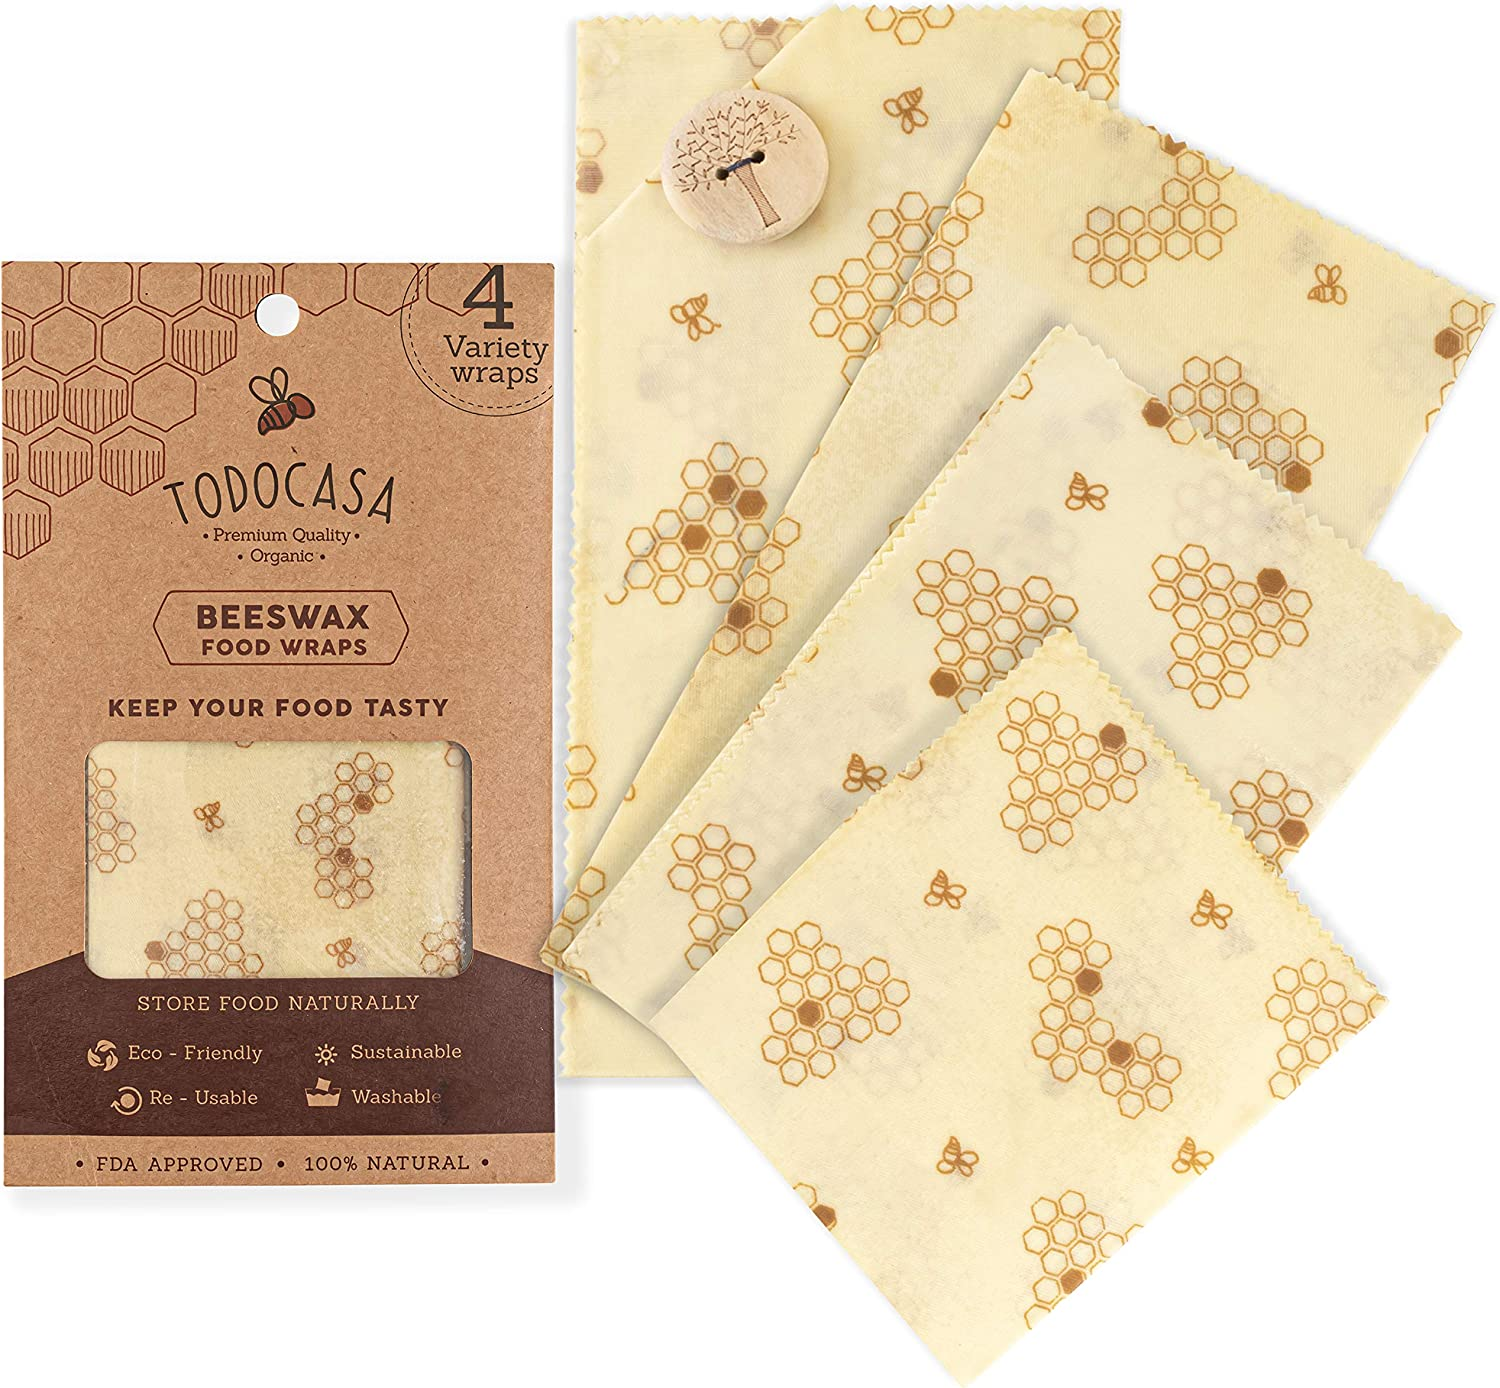 TODOCASA 4 pack Premium Organic Beeswax Food Wrap –Reusable, Eco-Friendly Food Cover, Plastic Free Food & Sandwich Storage, Sustainable, Washable, Compostable, Biodegradable